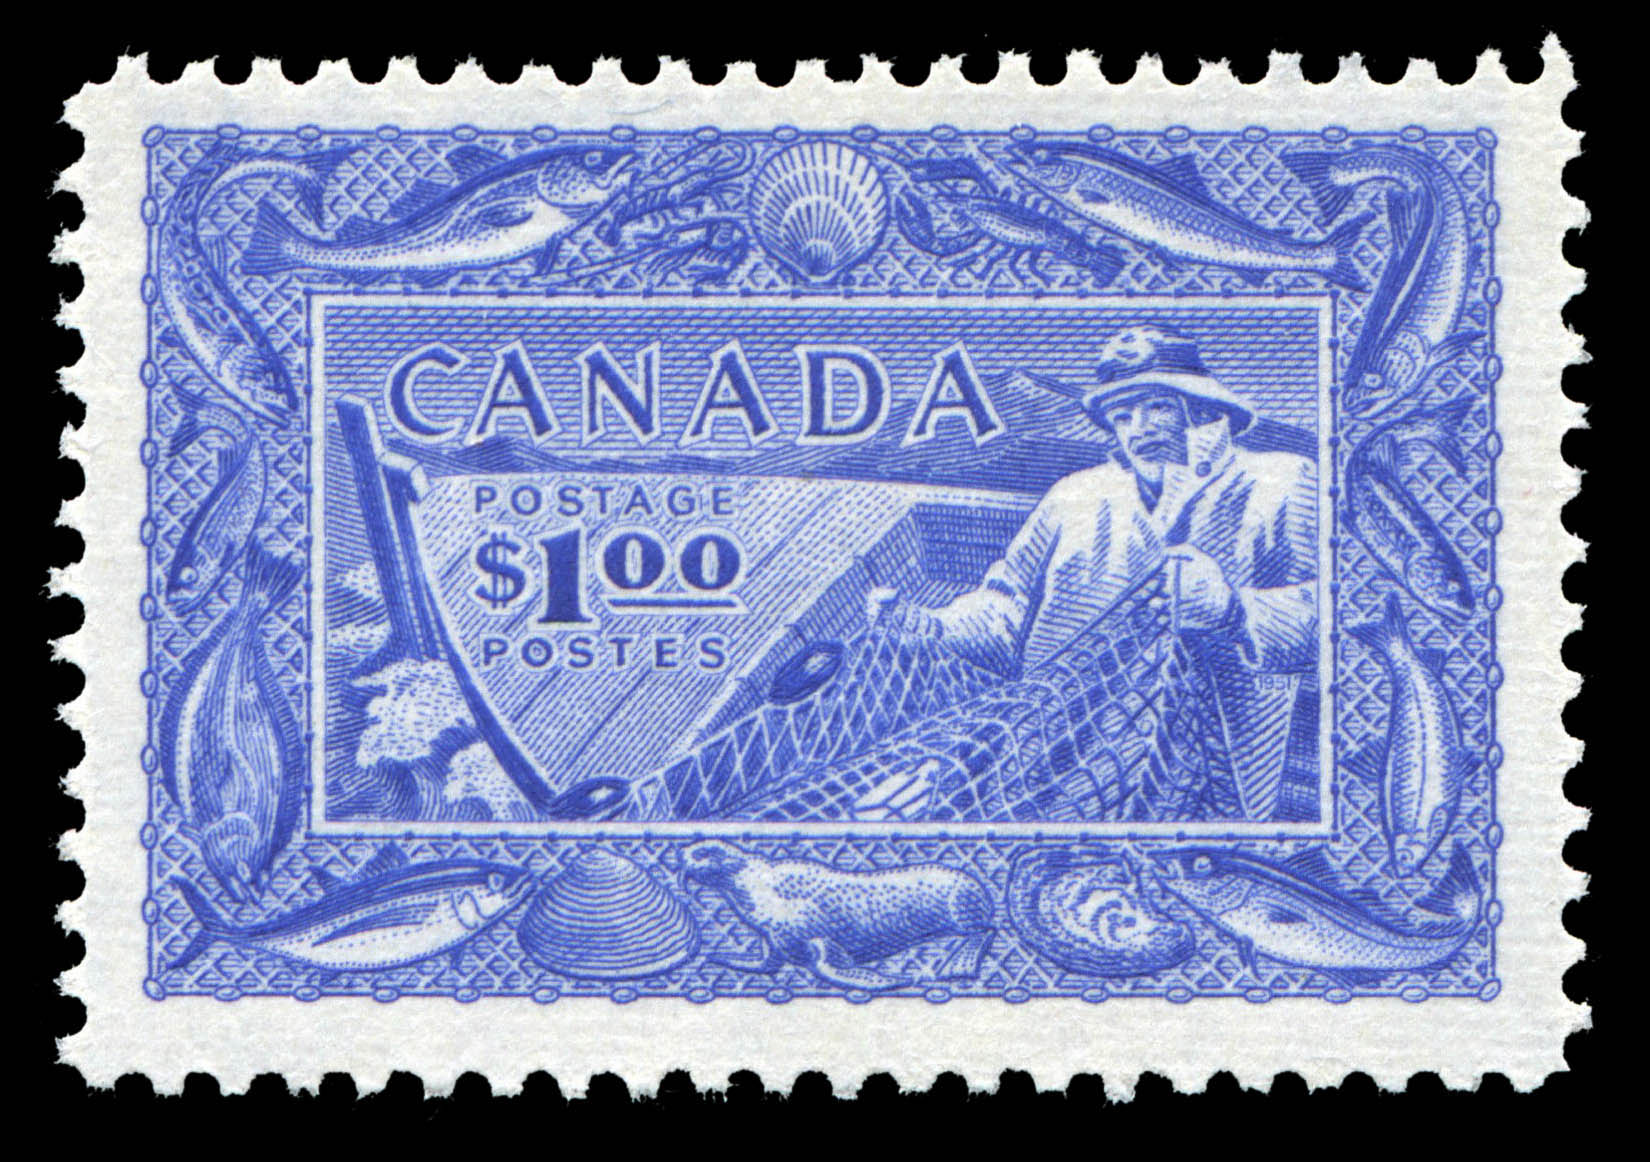 Canada's Fish Resources Canada Postage Stamp